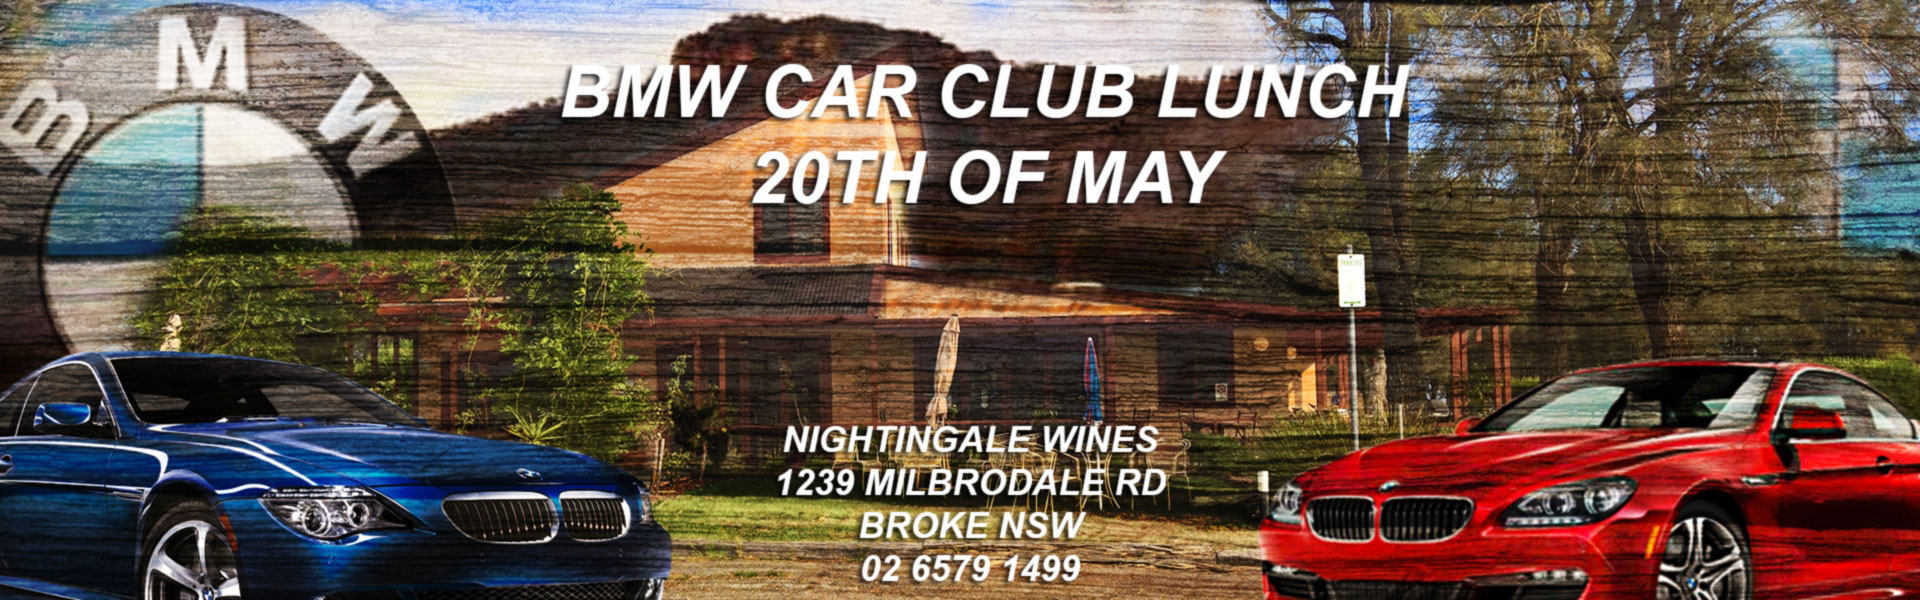 BMW Car Club Lunch